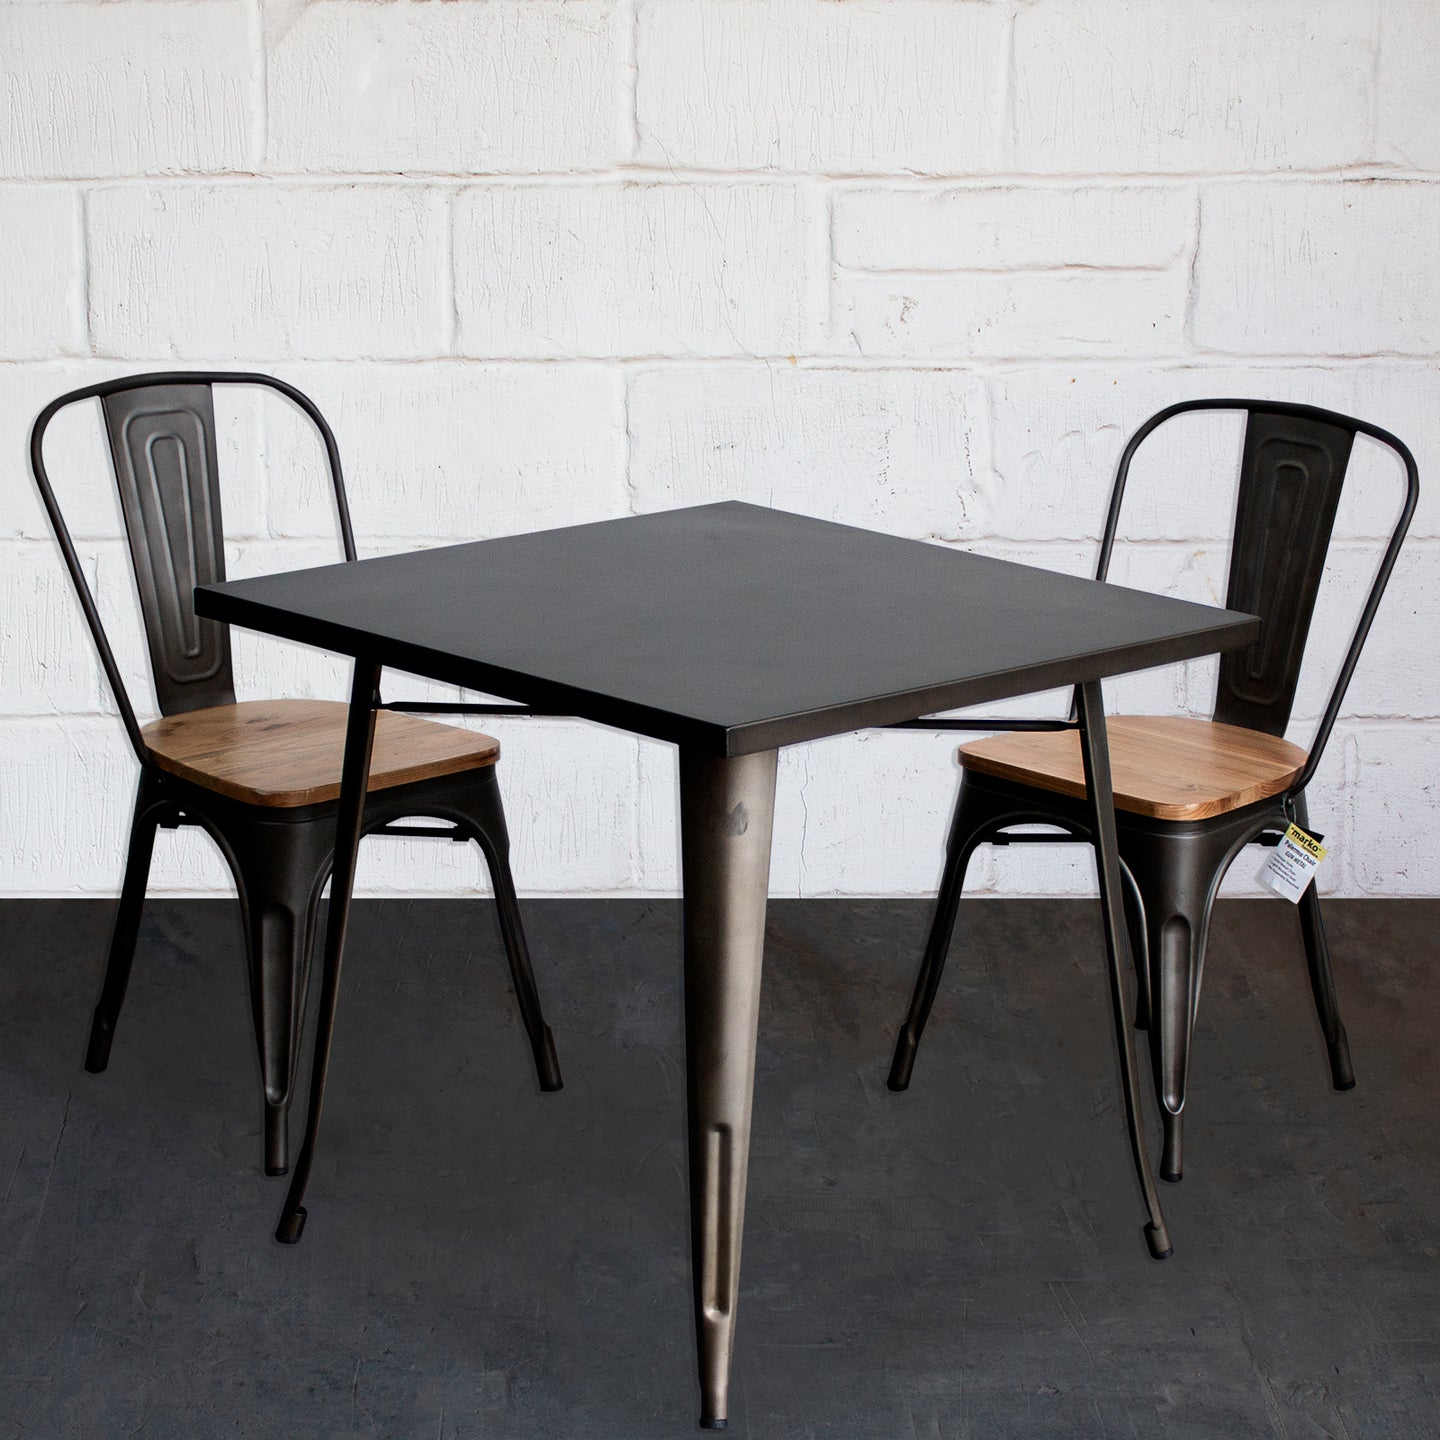 3PC Belvedere Table & Palermo Chair Set - Gun Metal Grey